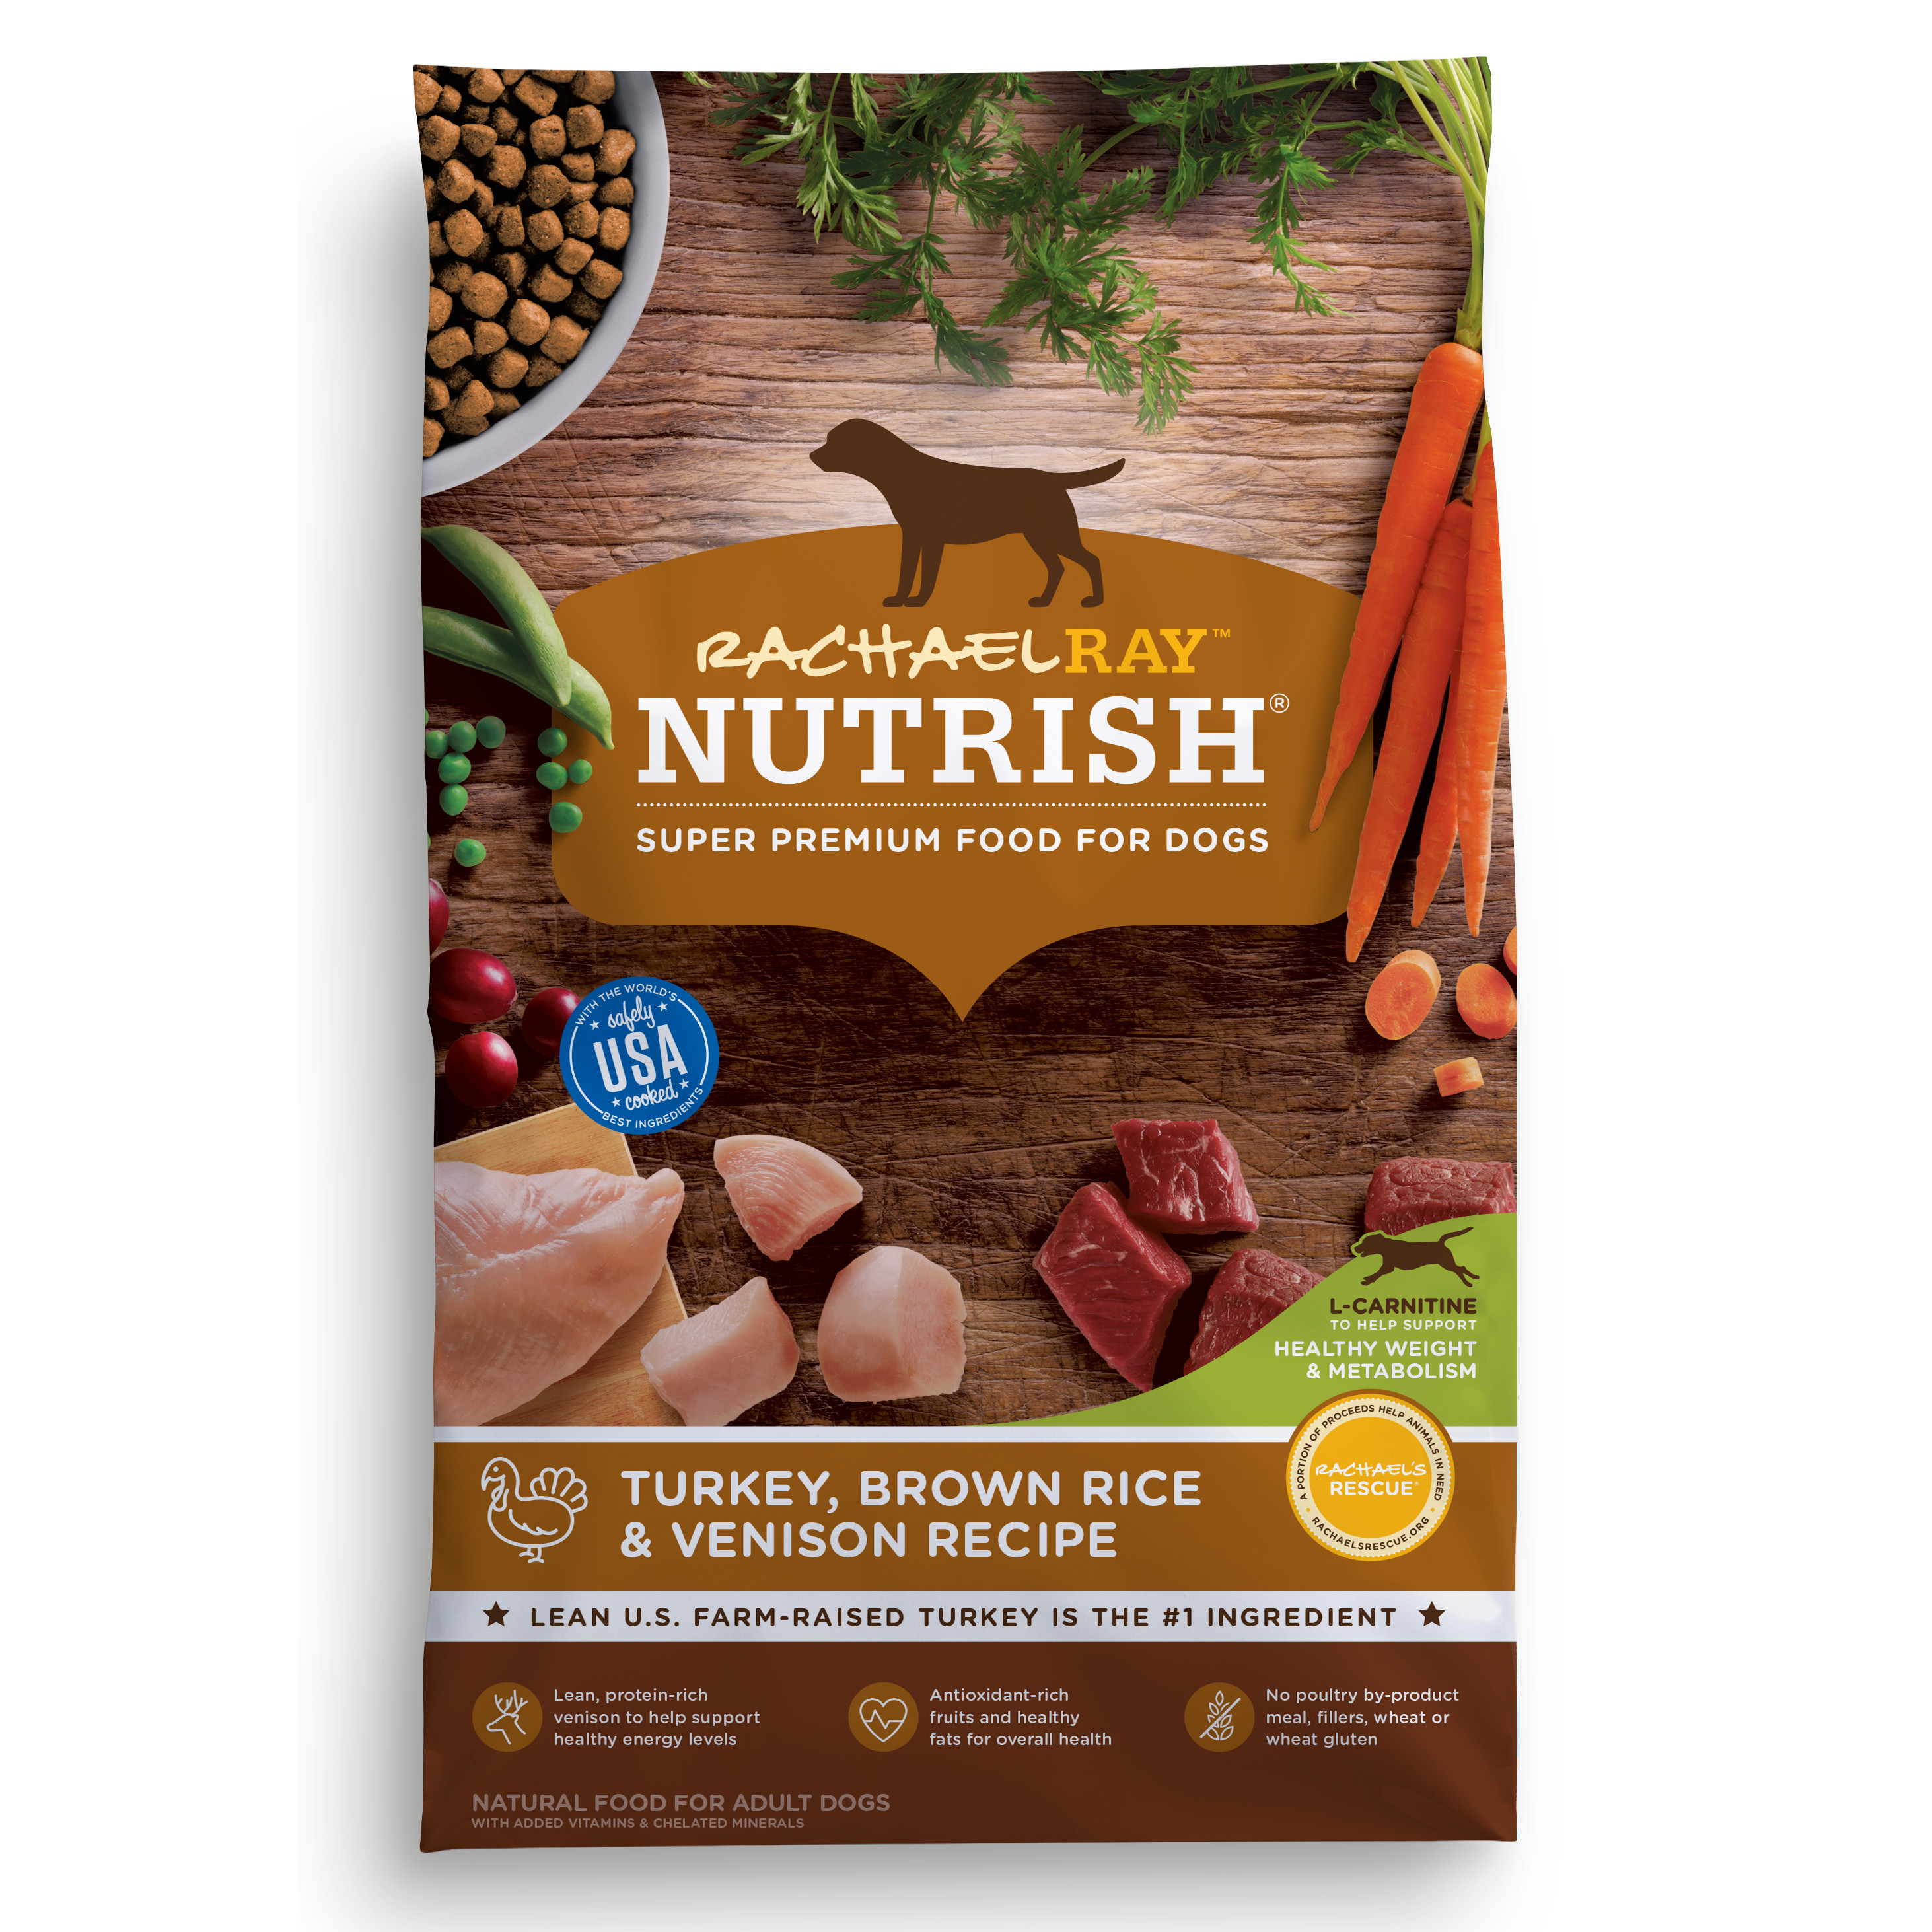 Rachael Ray Nutrish Natural Dry Dog Food, Turkey, Brown Rice & Venison Recipe, 13 lbs by AINSWORTH PET NUTRITION